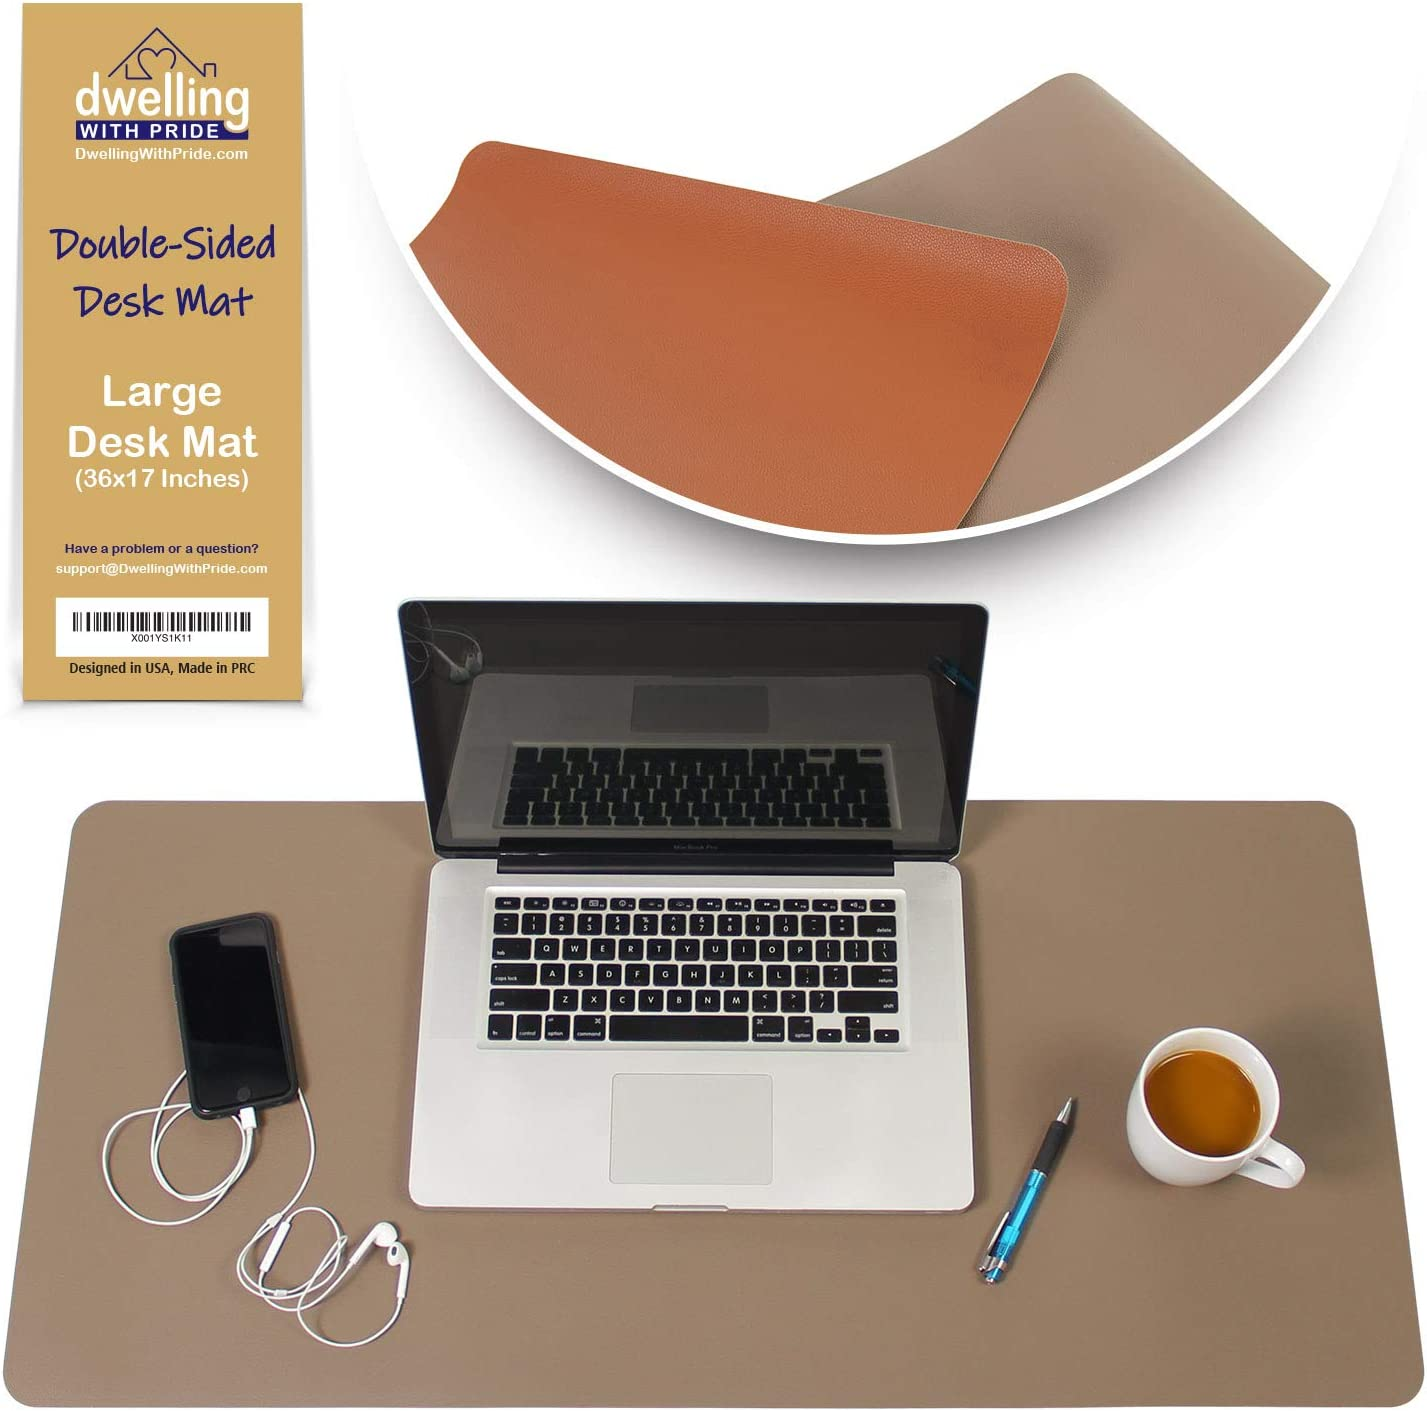 Desk Mat Brown & Dark Brown 17x36 - Computer, Laptop, Keyboard & Mouse Pad Organizer - Leather Cover Office Table Protector - Double Side Gaming Surface with Colors - Typing & Writing Accessories